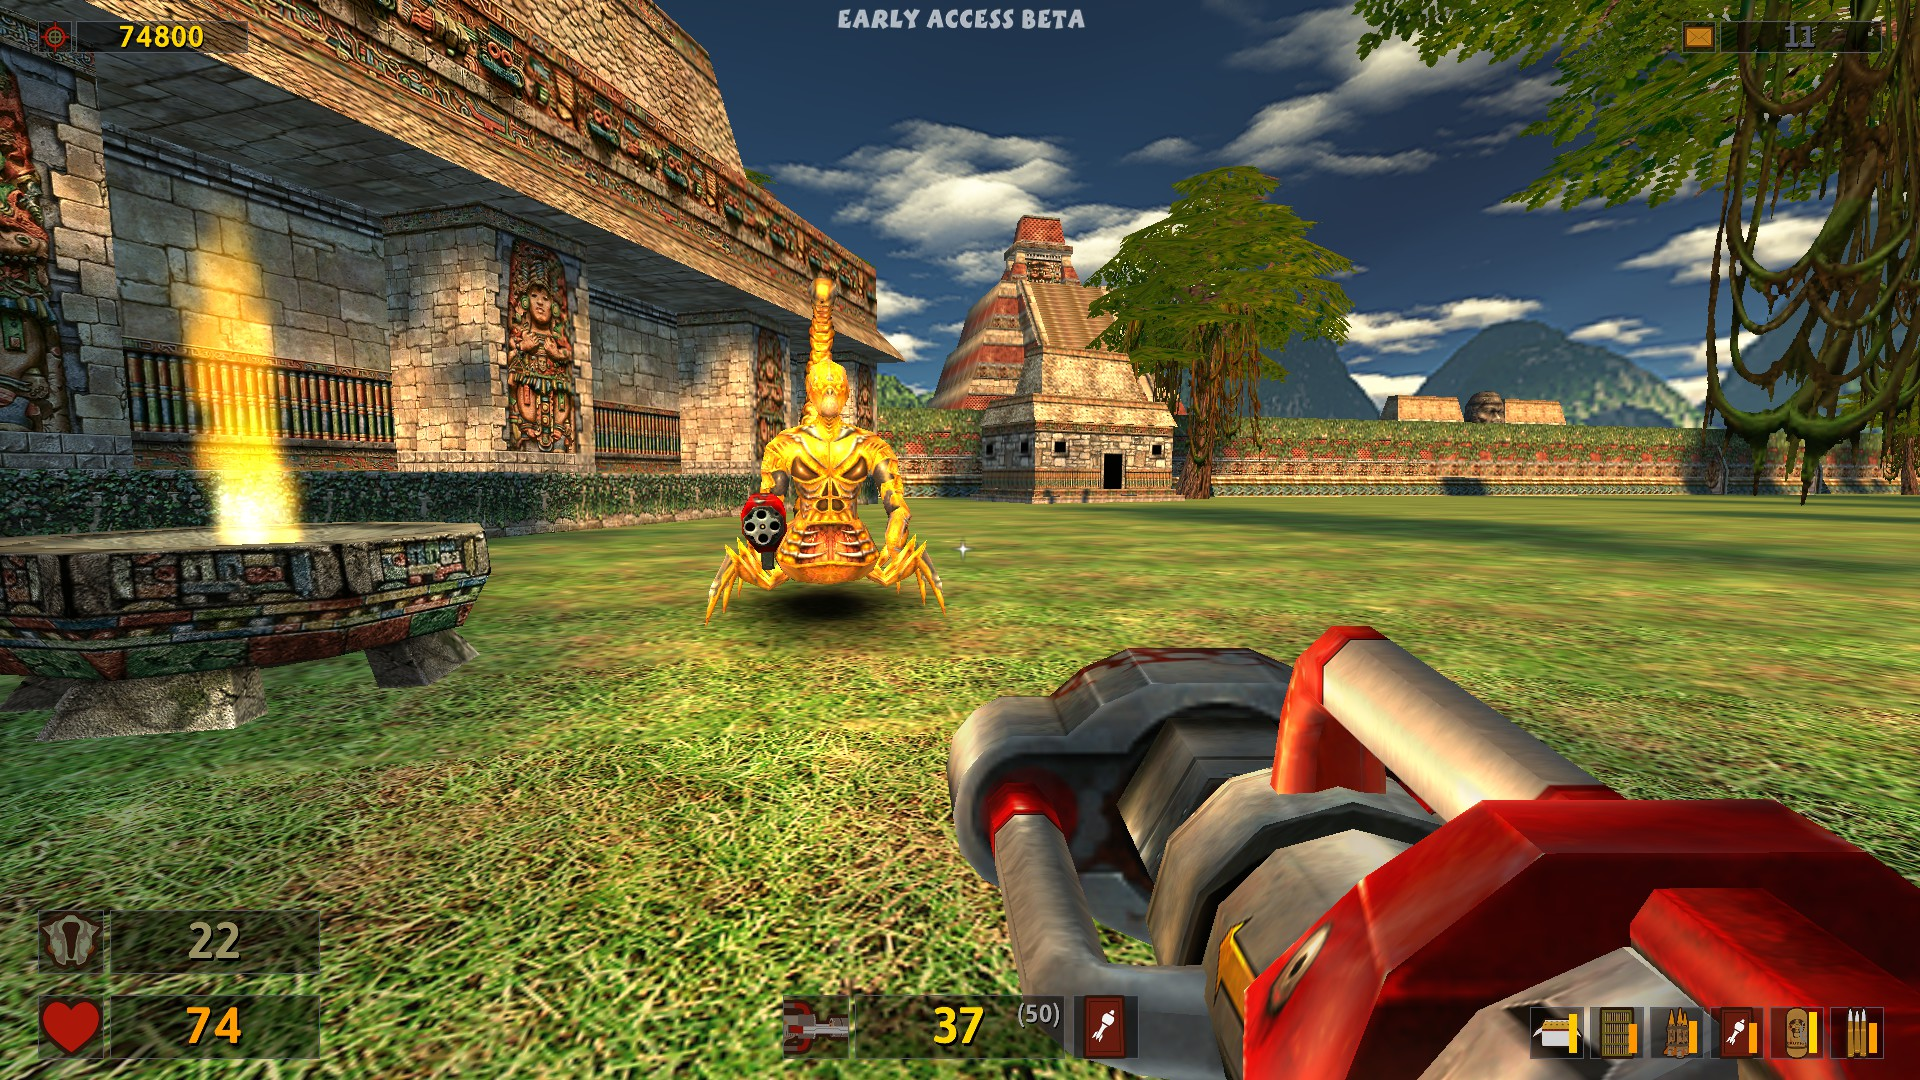 Serious Sam: The First Encounter - Free GoG PC Games